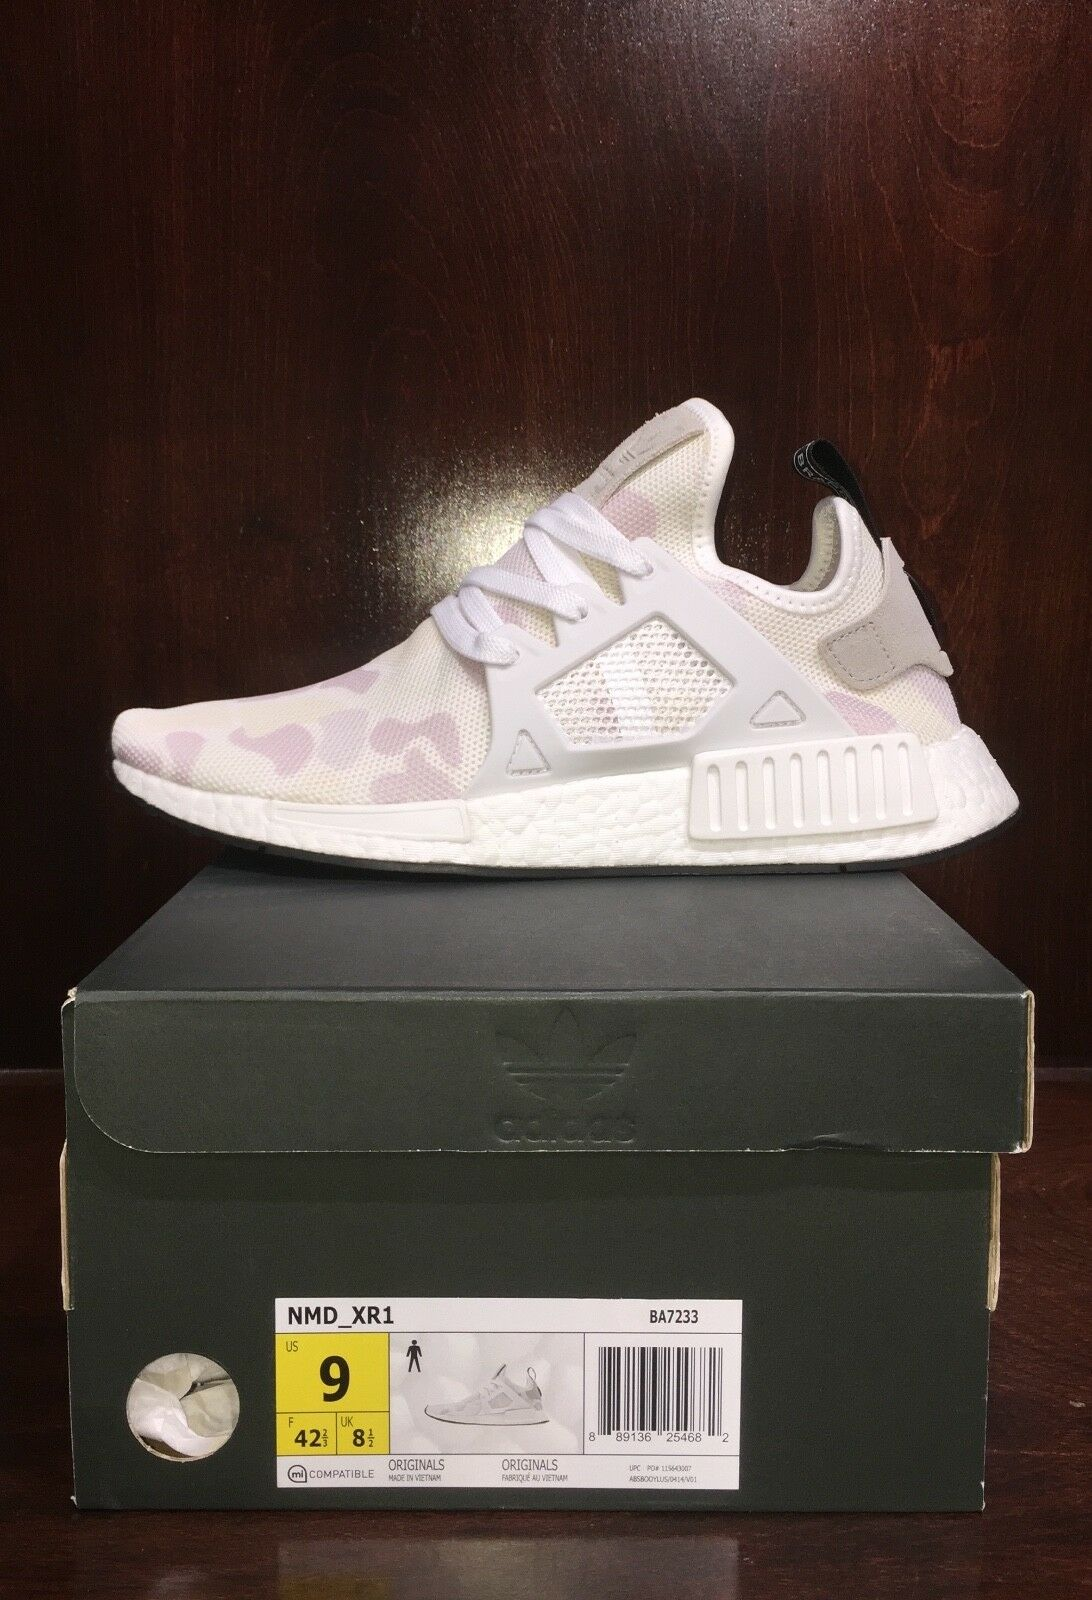 4b6f8ec38 代購æ 洲公 貨Adidas Originals NMD XR1 S32218 é